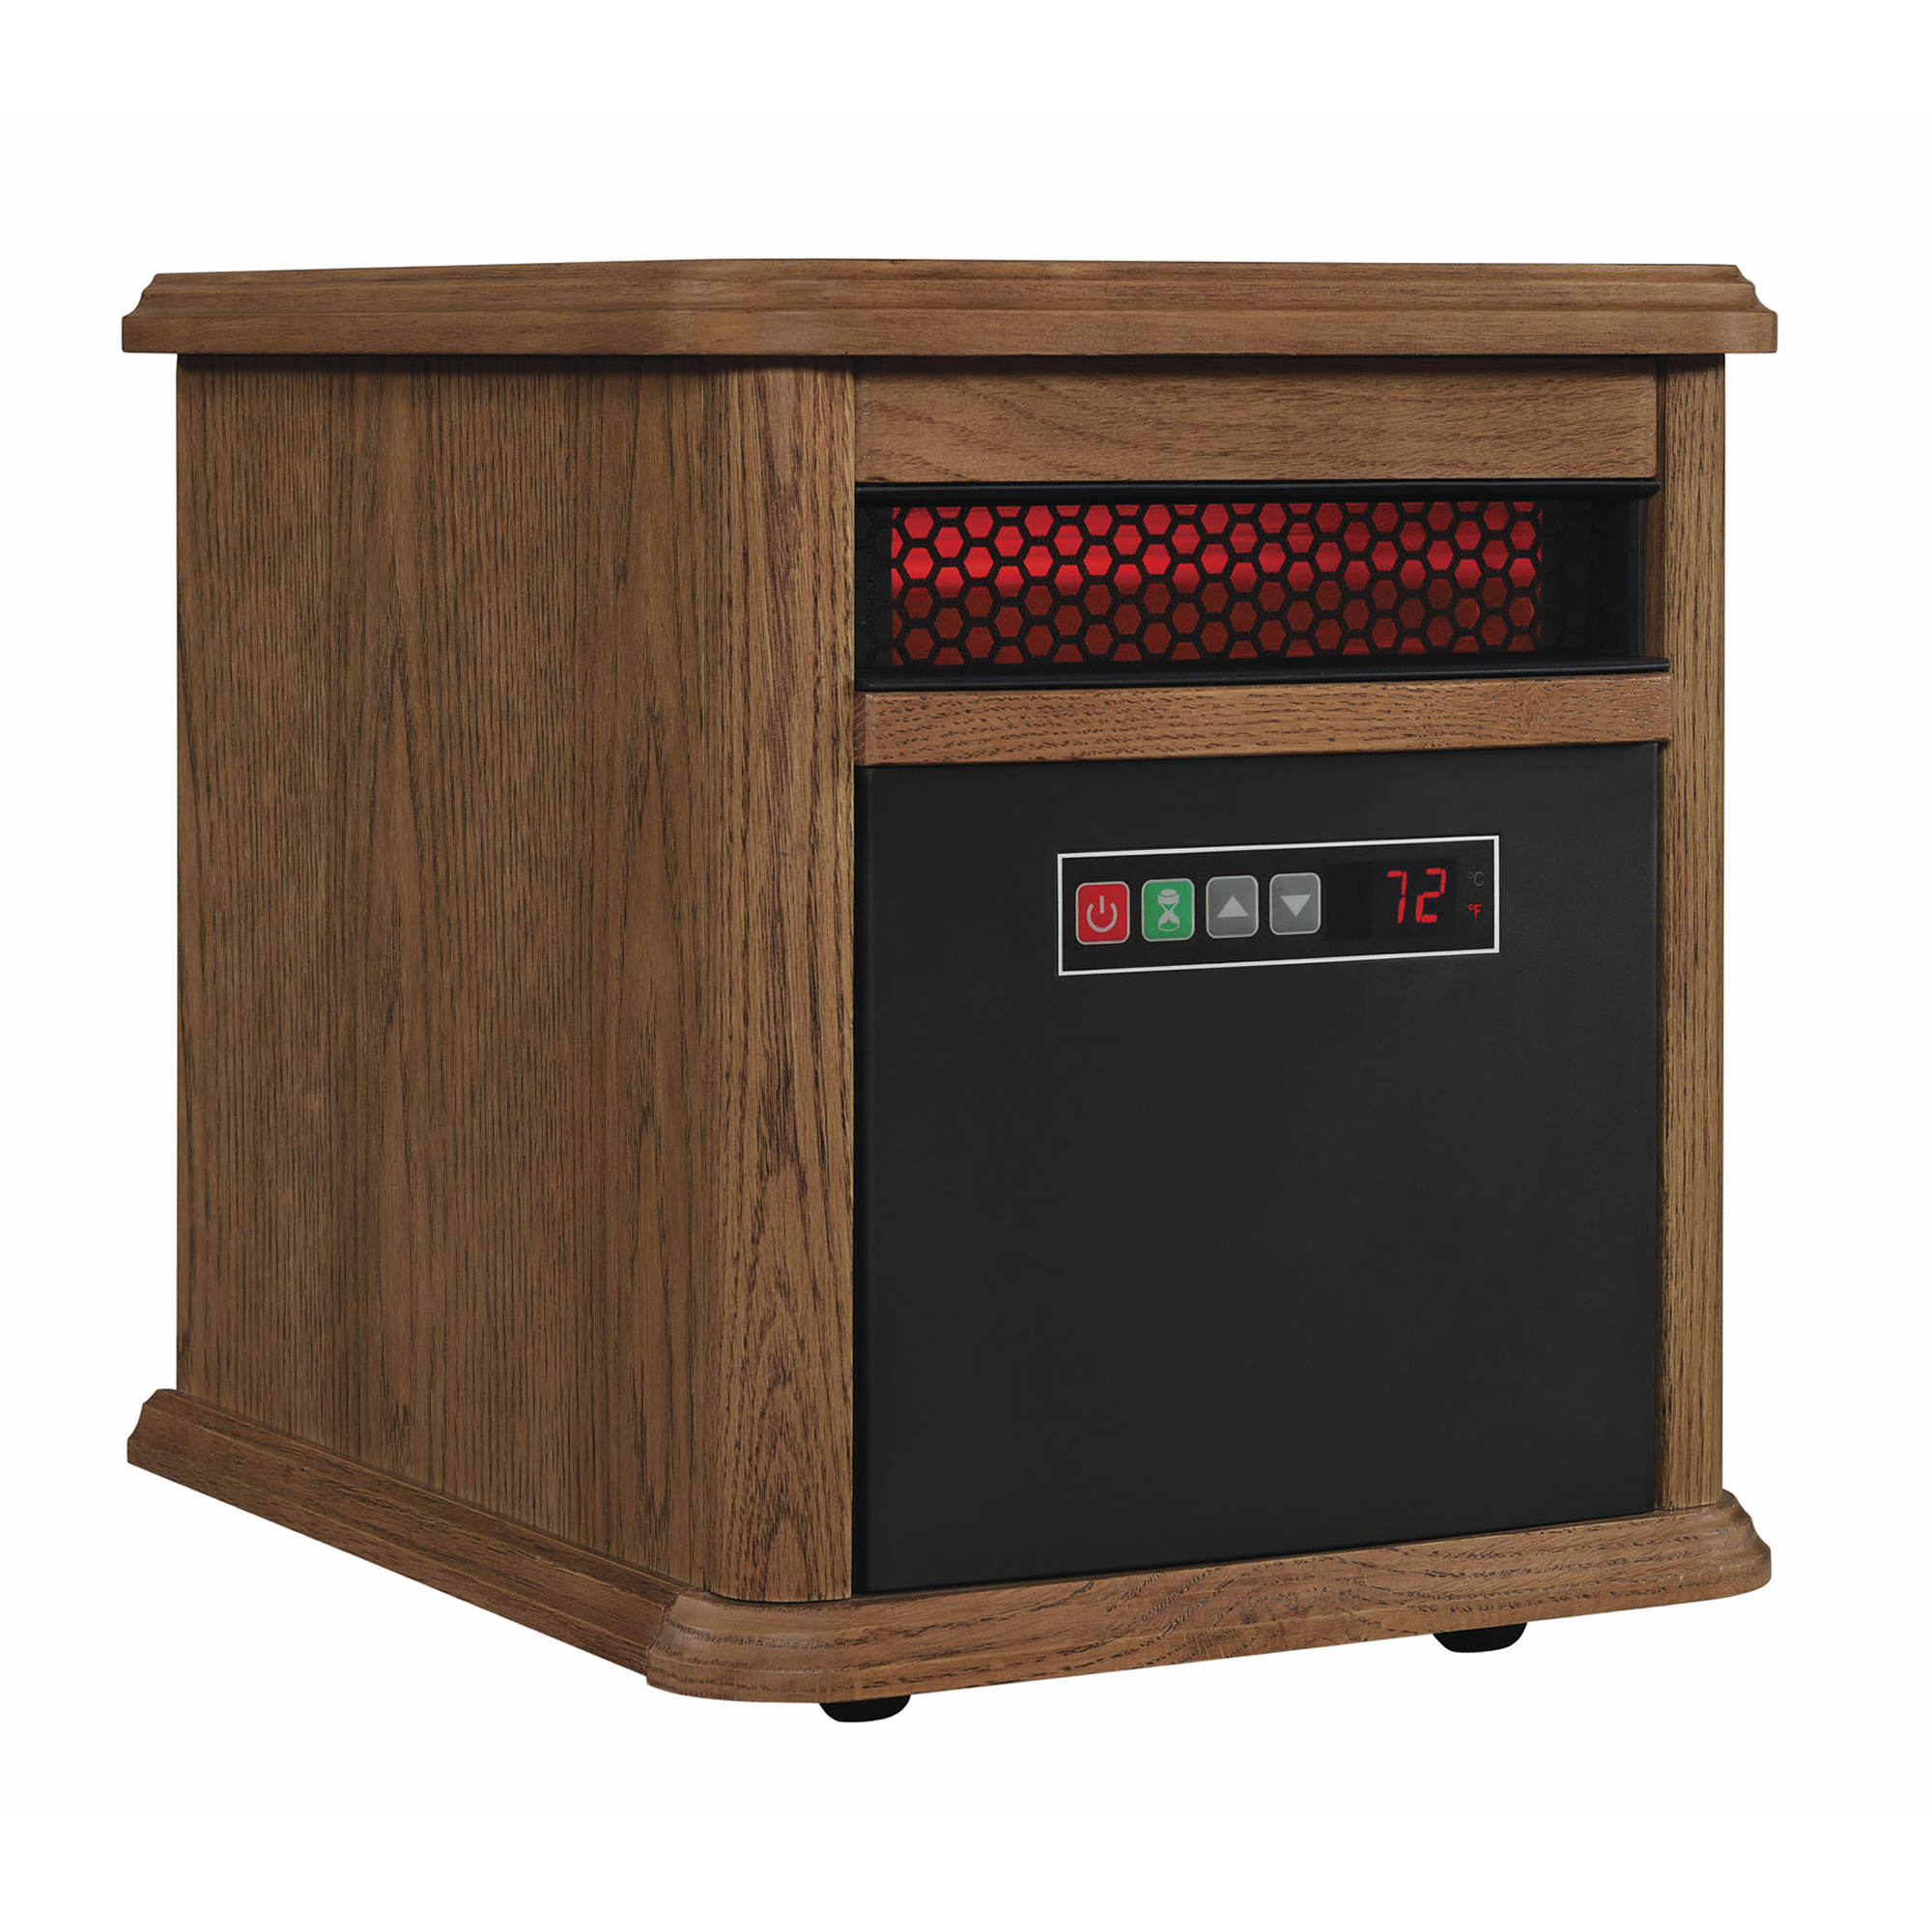 Duraflame 5,200-BTU Portable Electric Infrared Quartz Heater - Oak